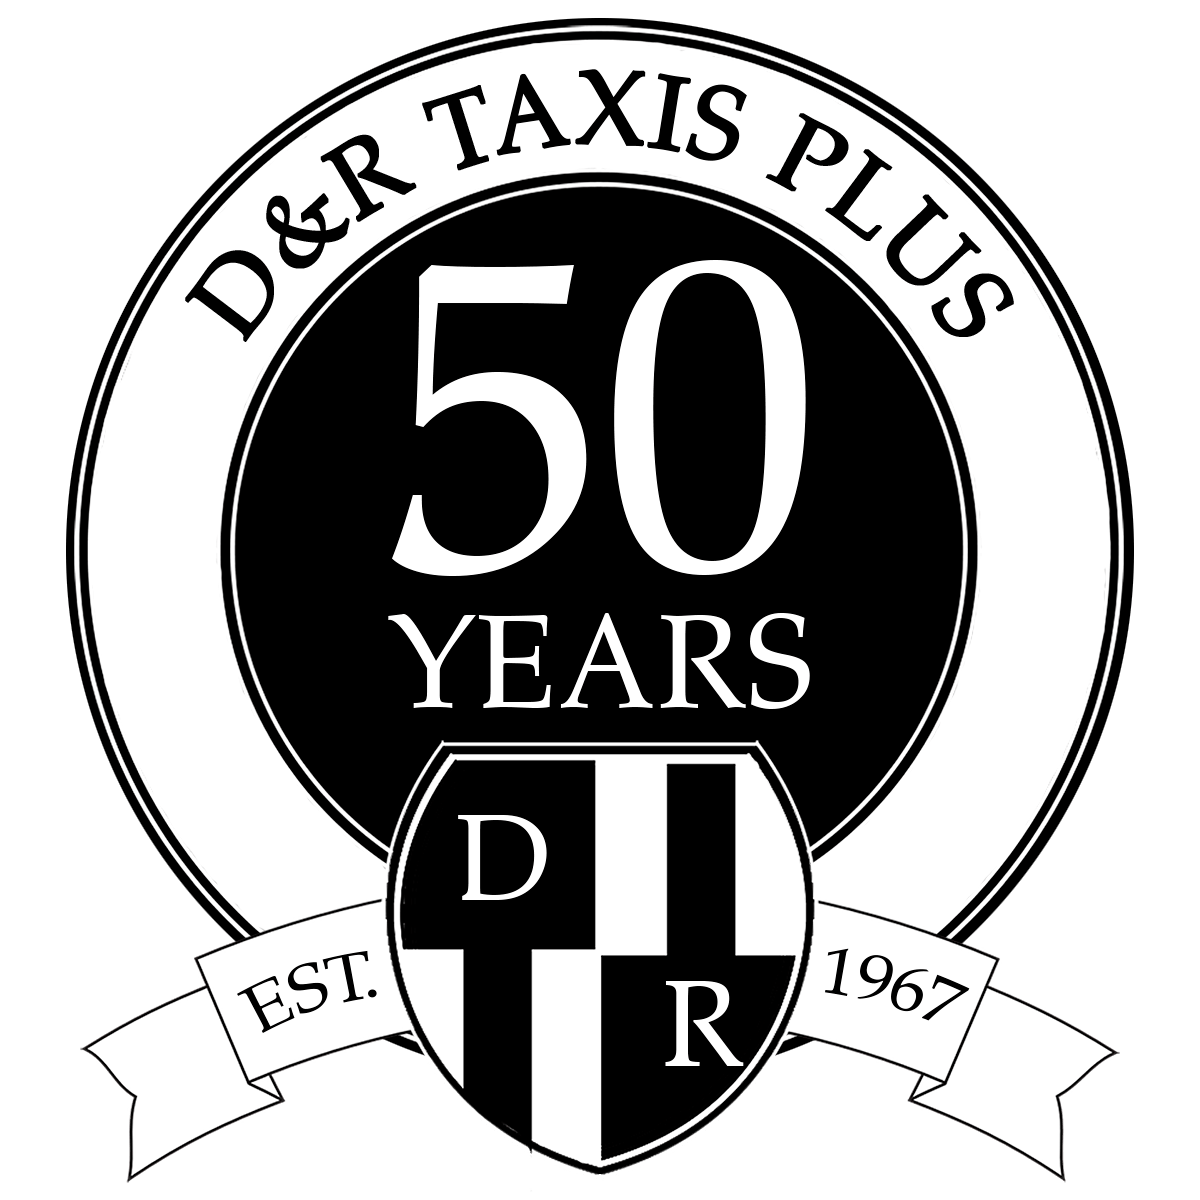 D&R Taxis Plus Ltd